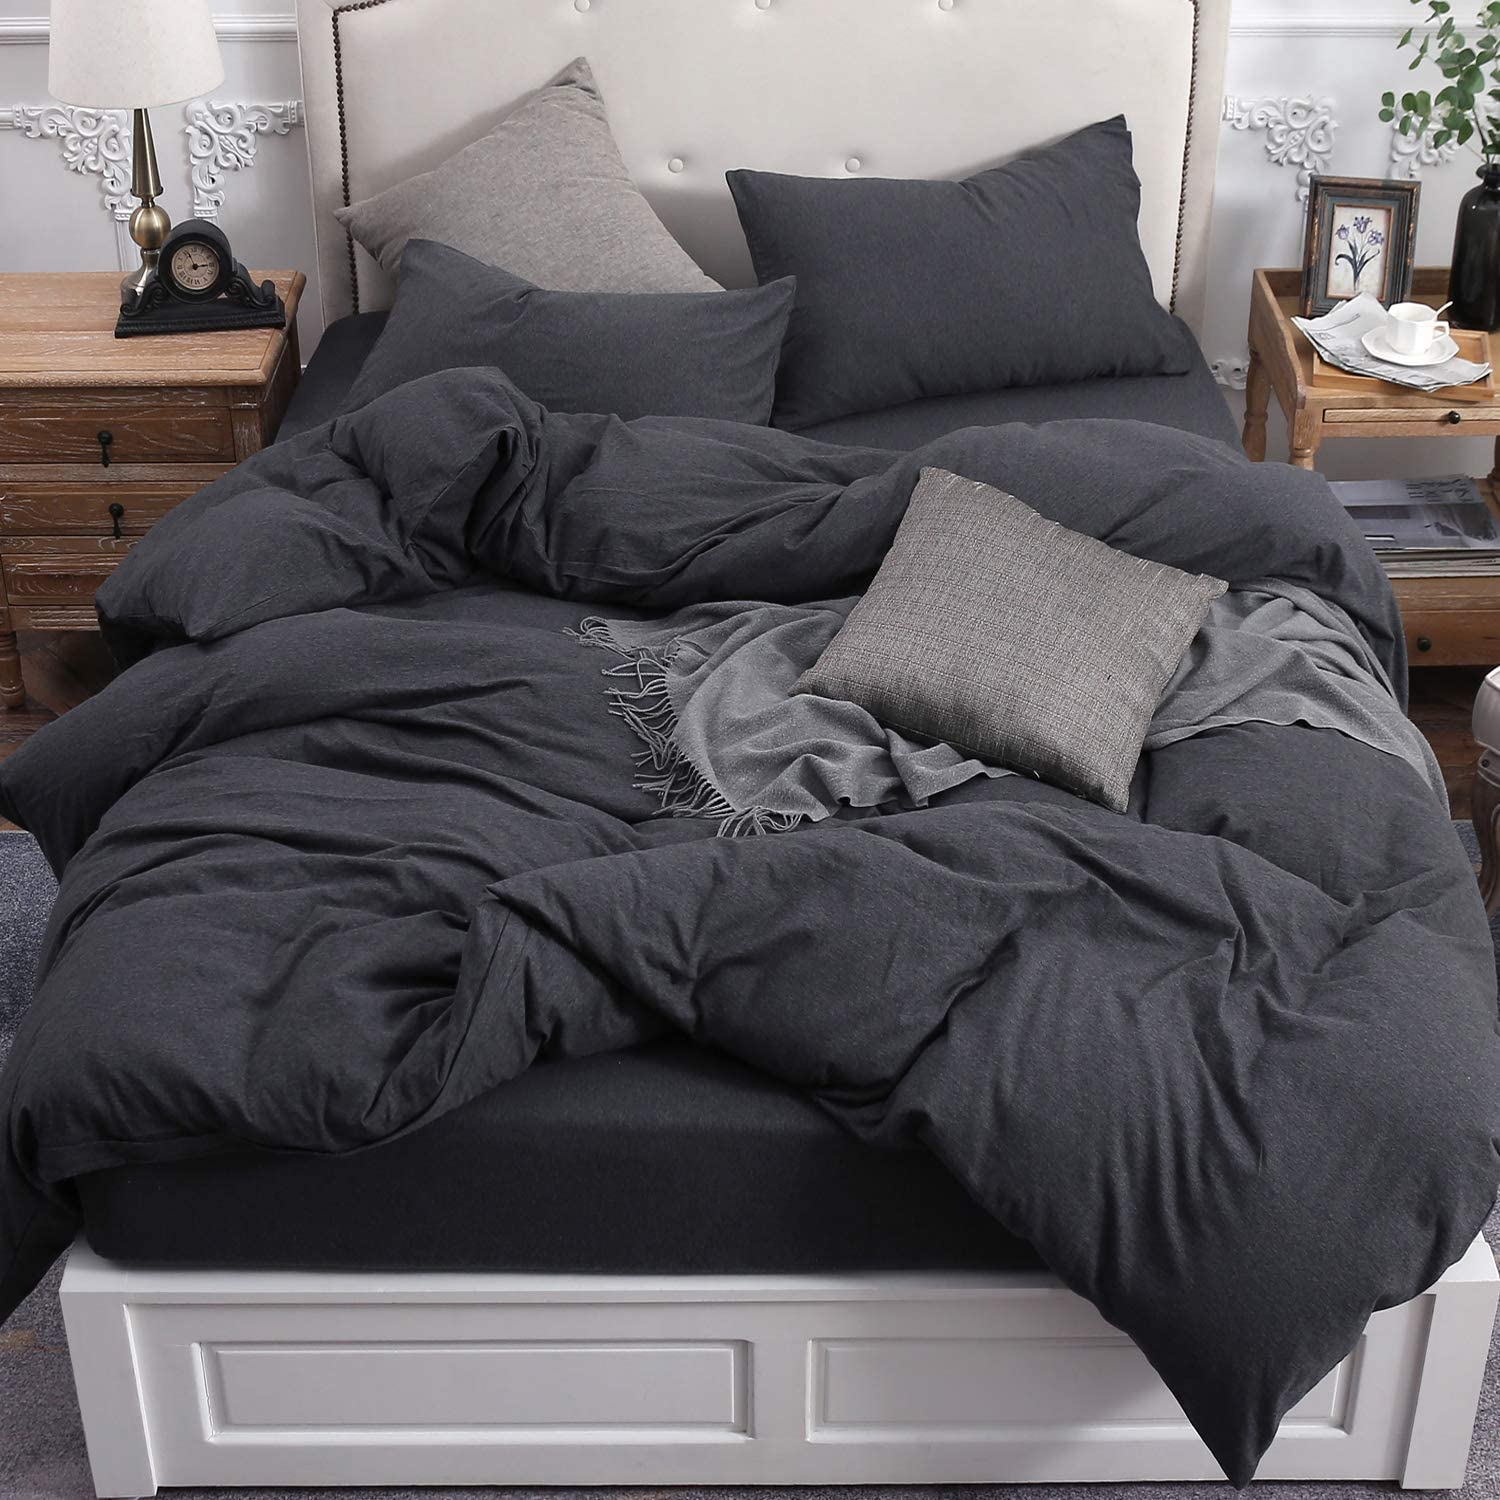 PURE ERA Duvet Cover Set 100% Cotton Jersey Knit Bedding, Super Soft Comfy, Heathered Charcoal Black Queen